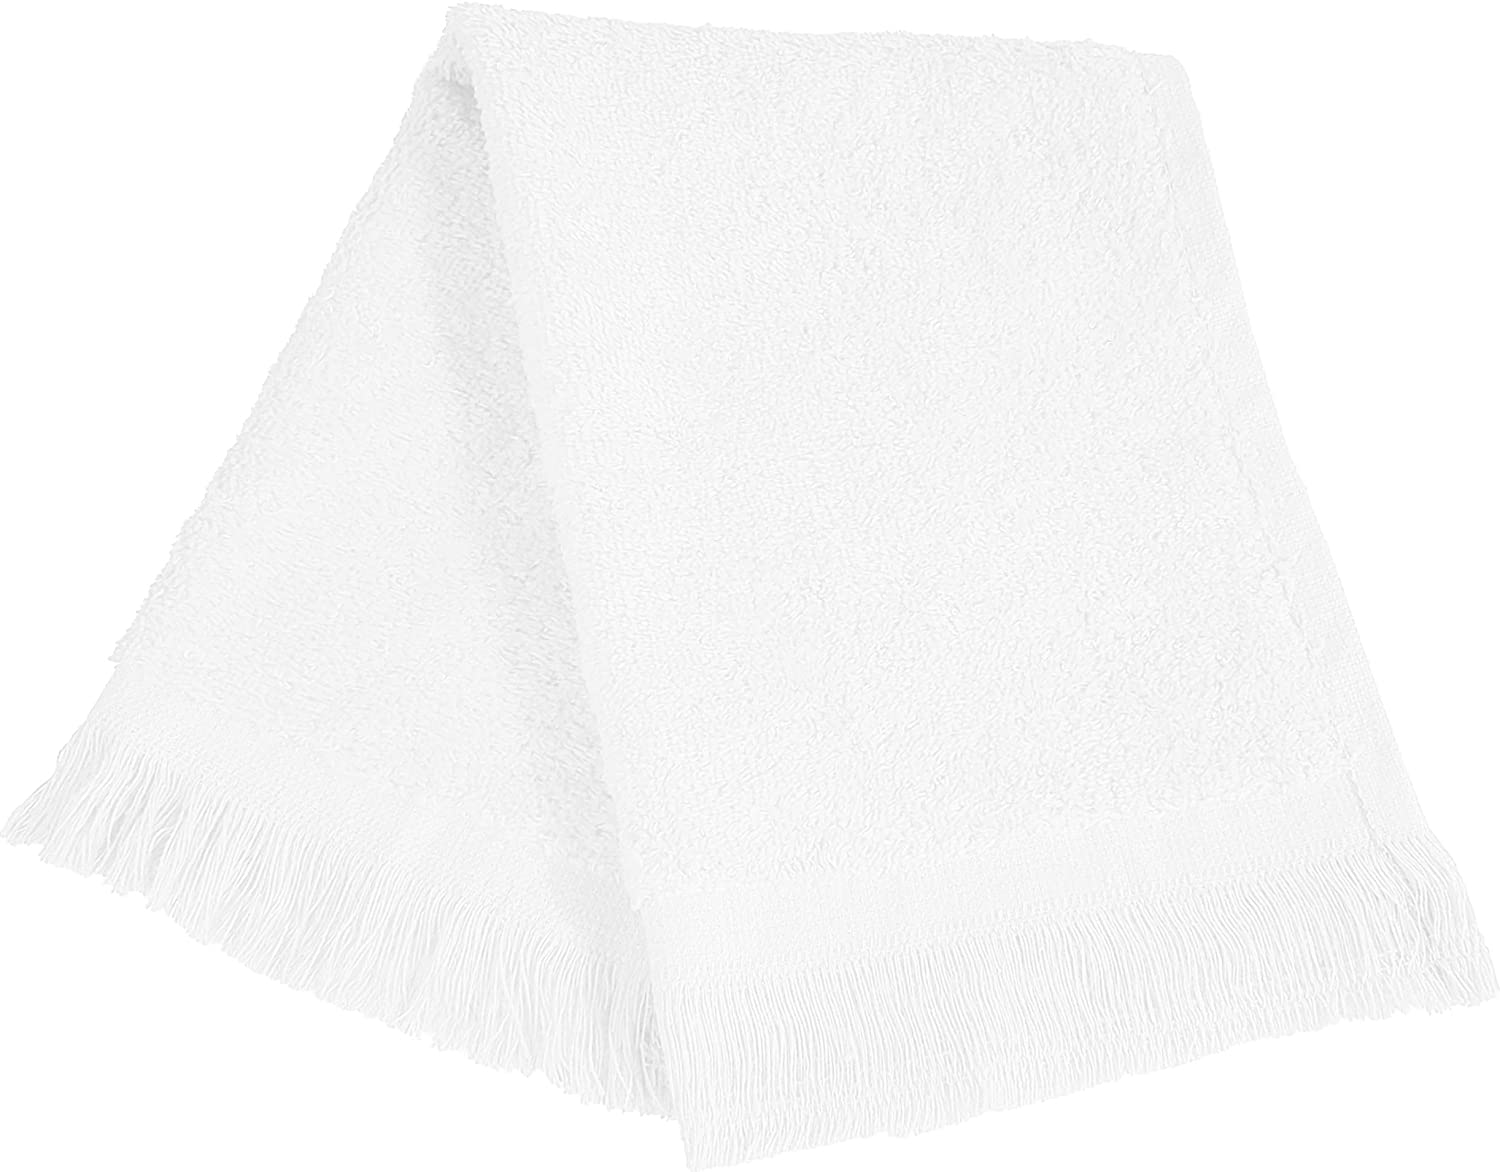 12 Pack Max 65% OFF Set of 12- Fingertip Promotional White Arlington Mall Priced Towels